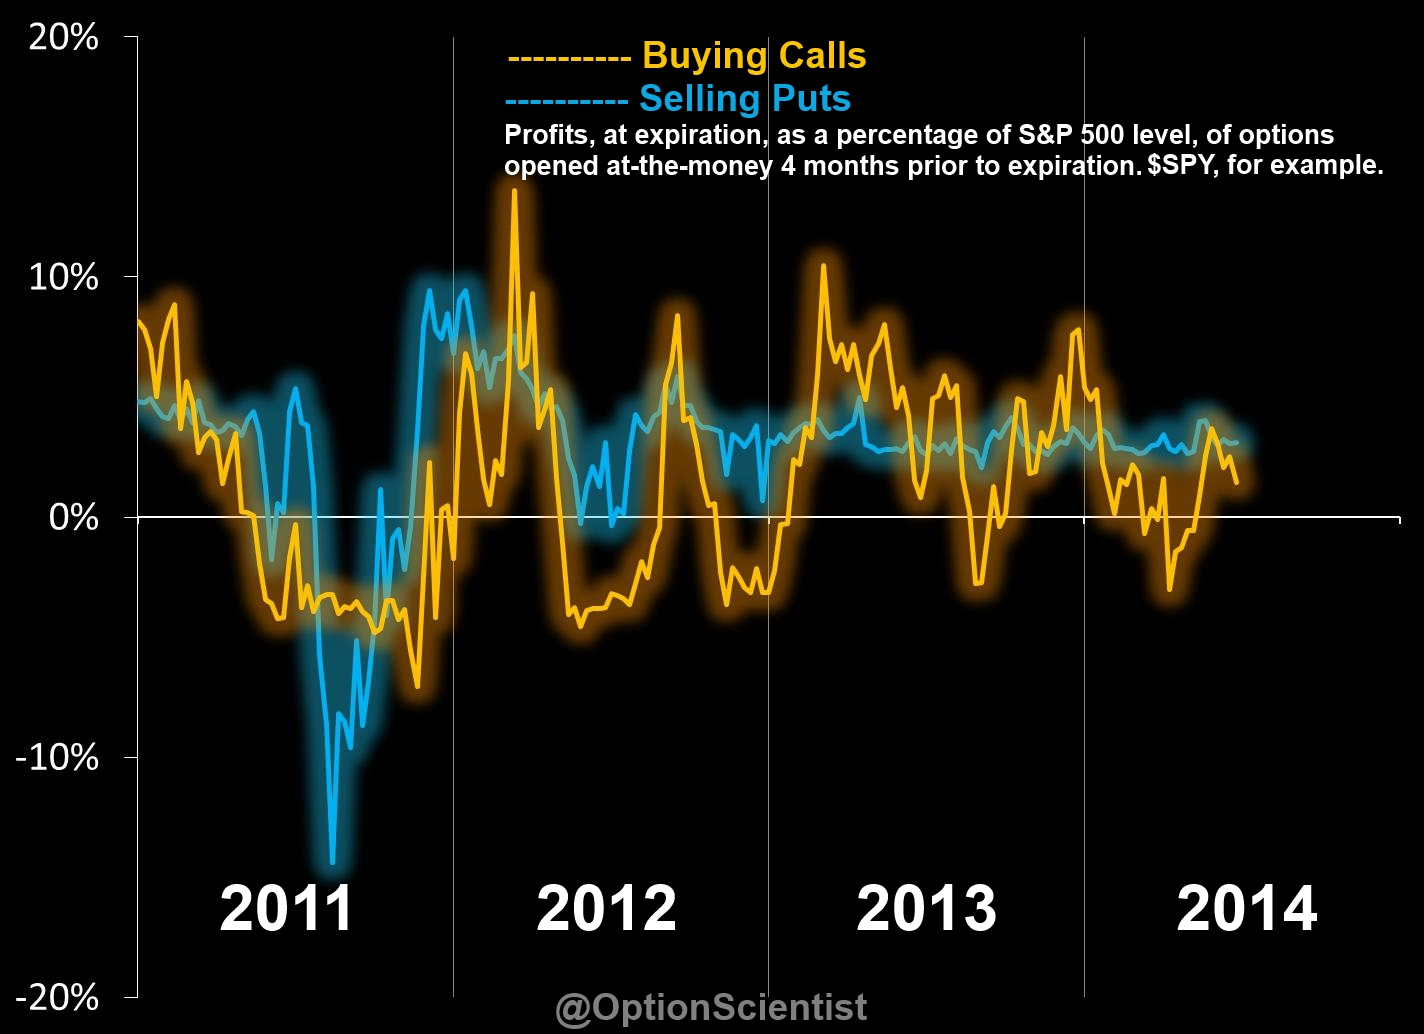 Selling Puts Vs. Buying Calls